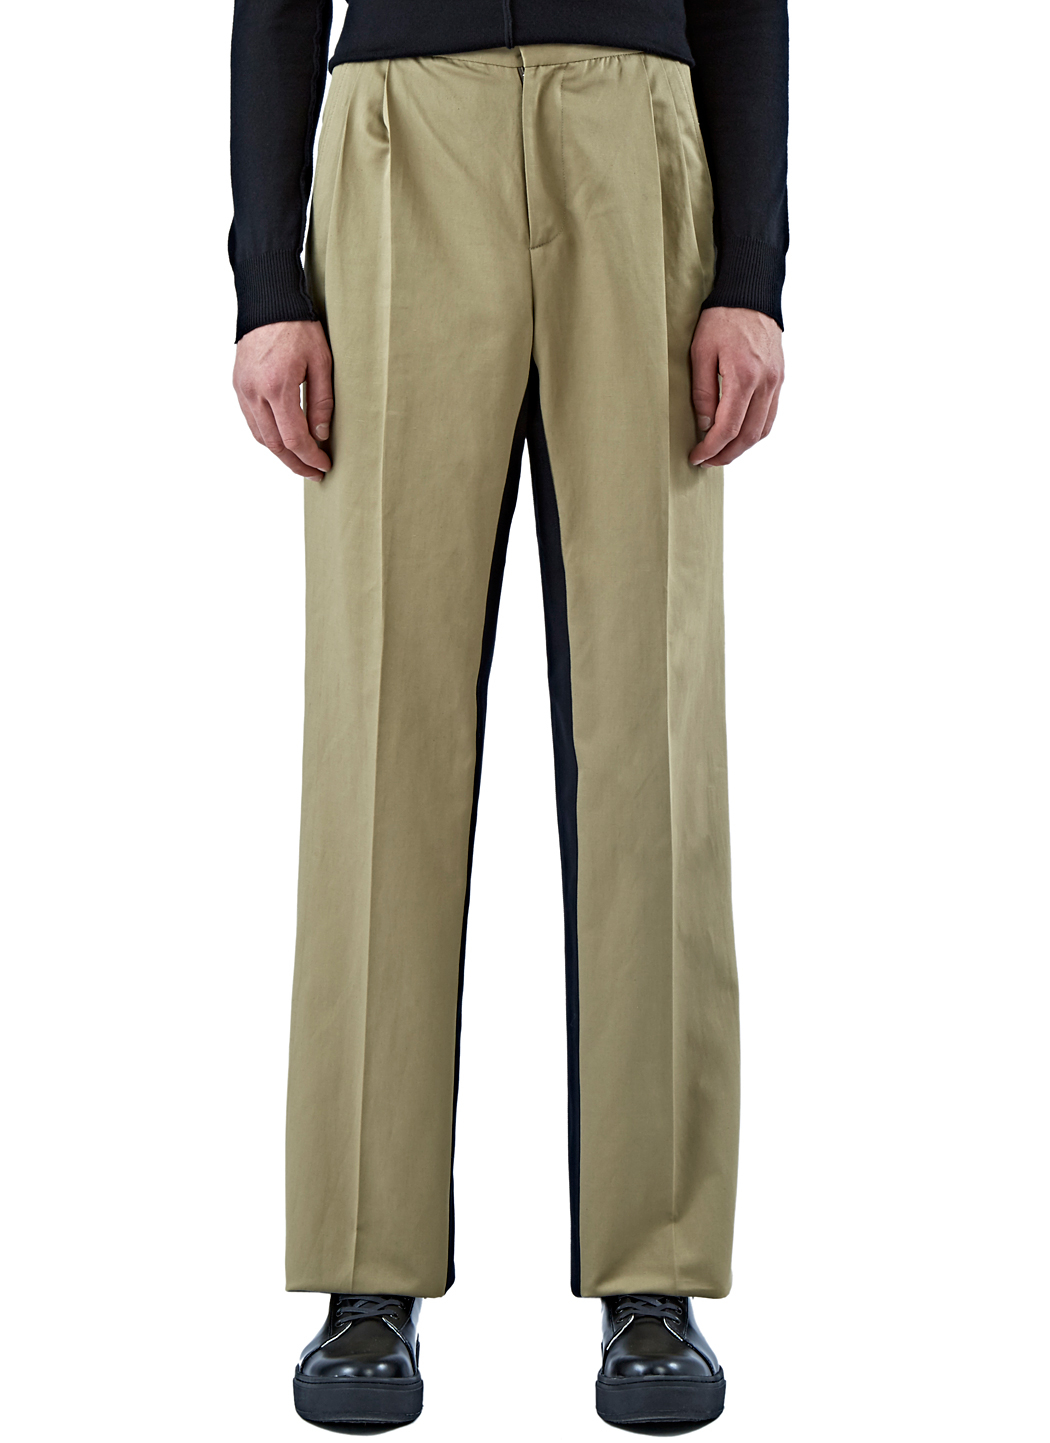 Yang li Men's Wide Leg Chino Pants In Khaki for Men | Lyst